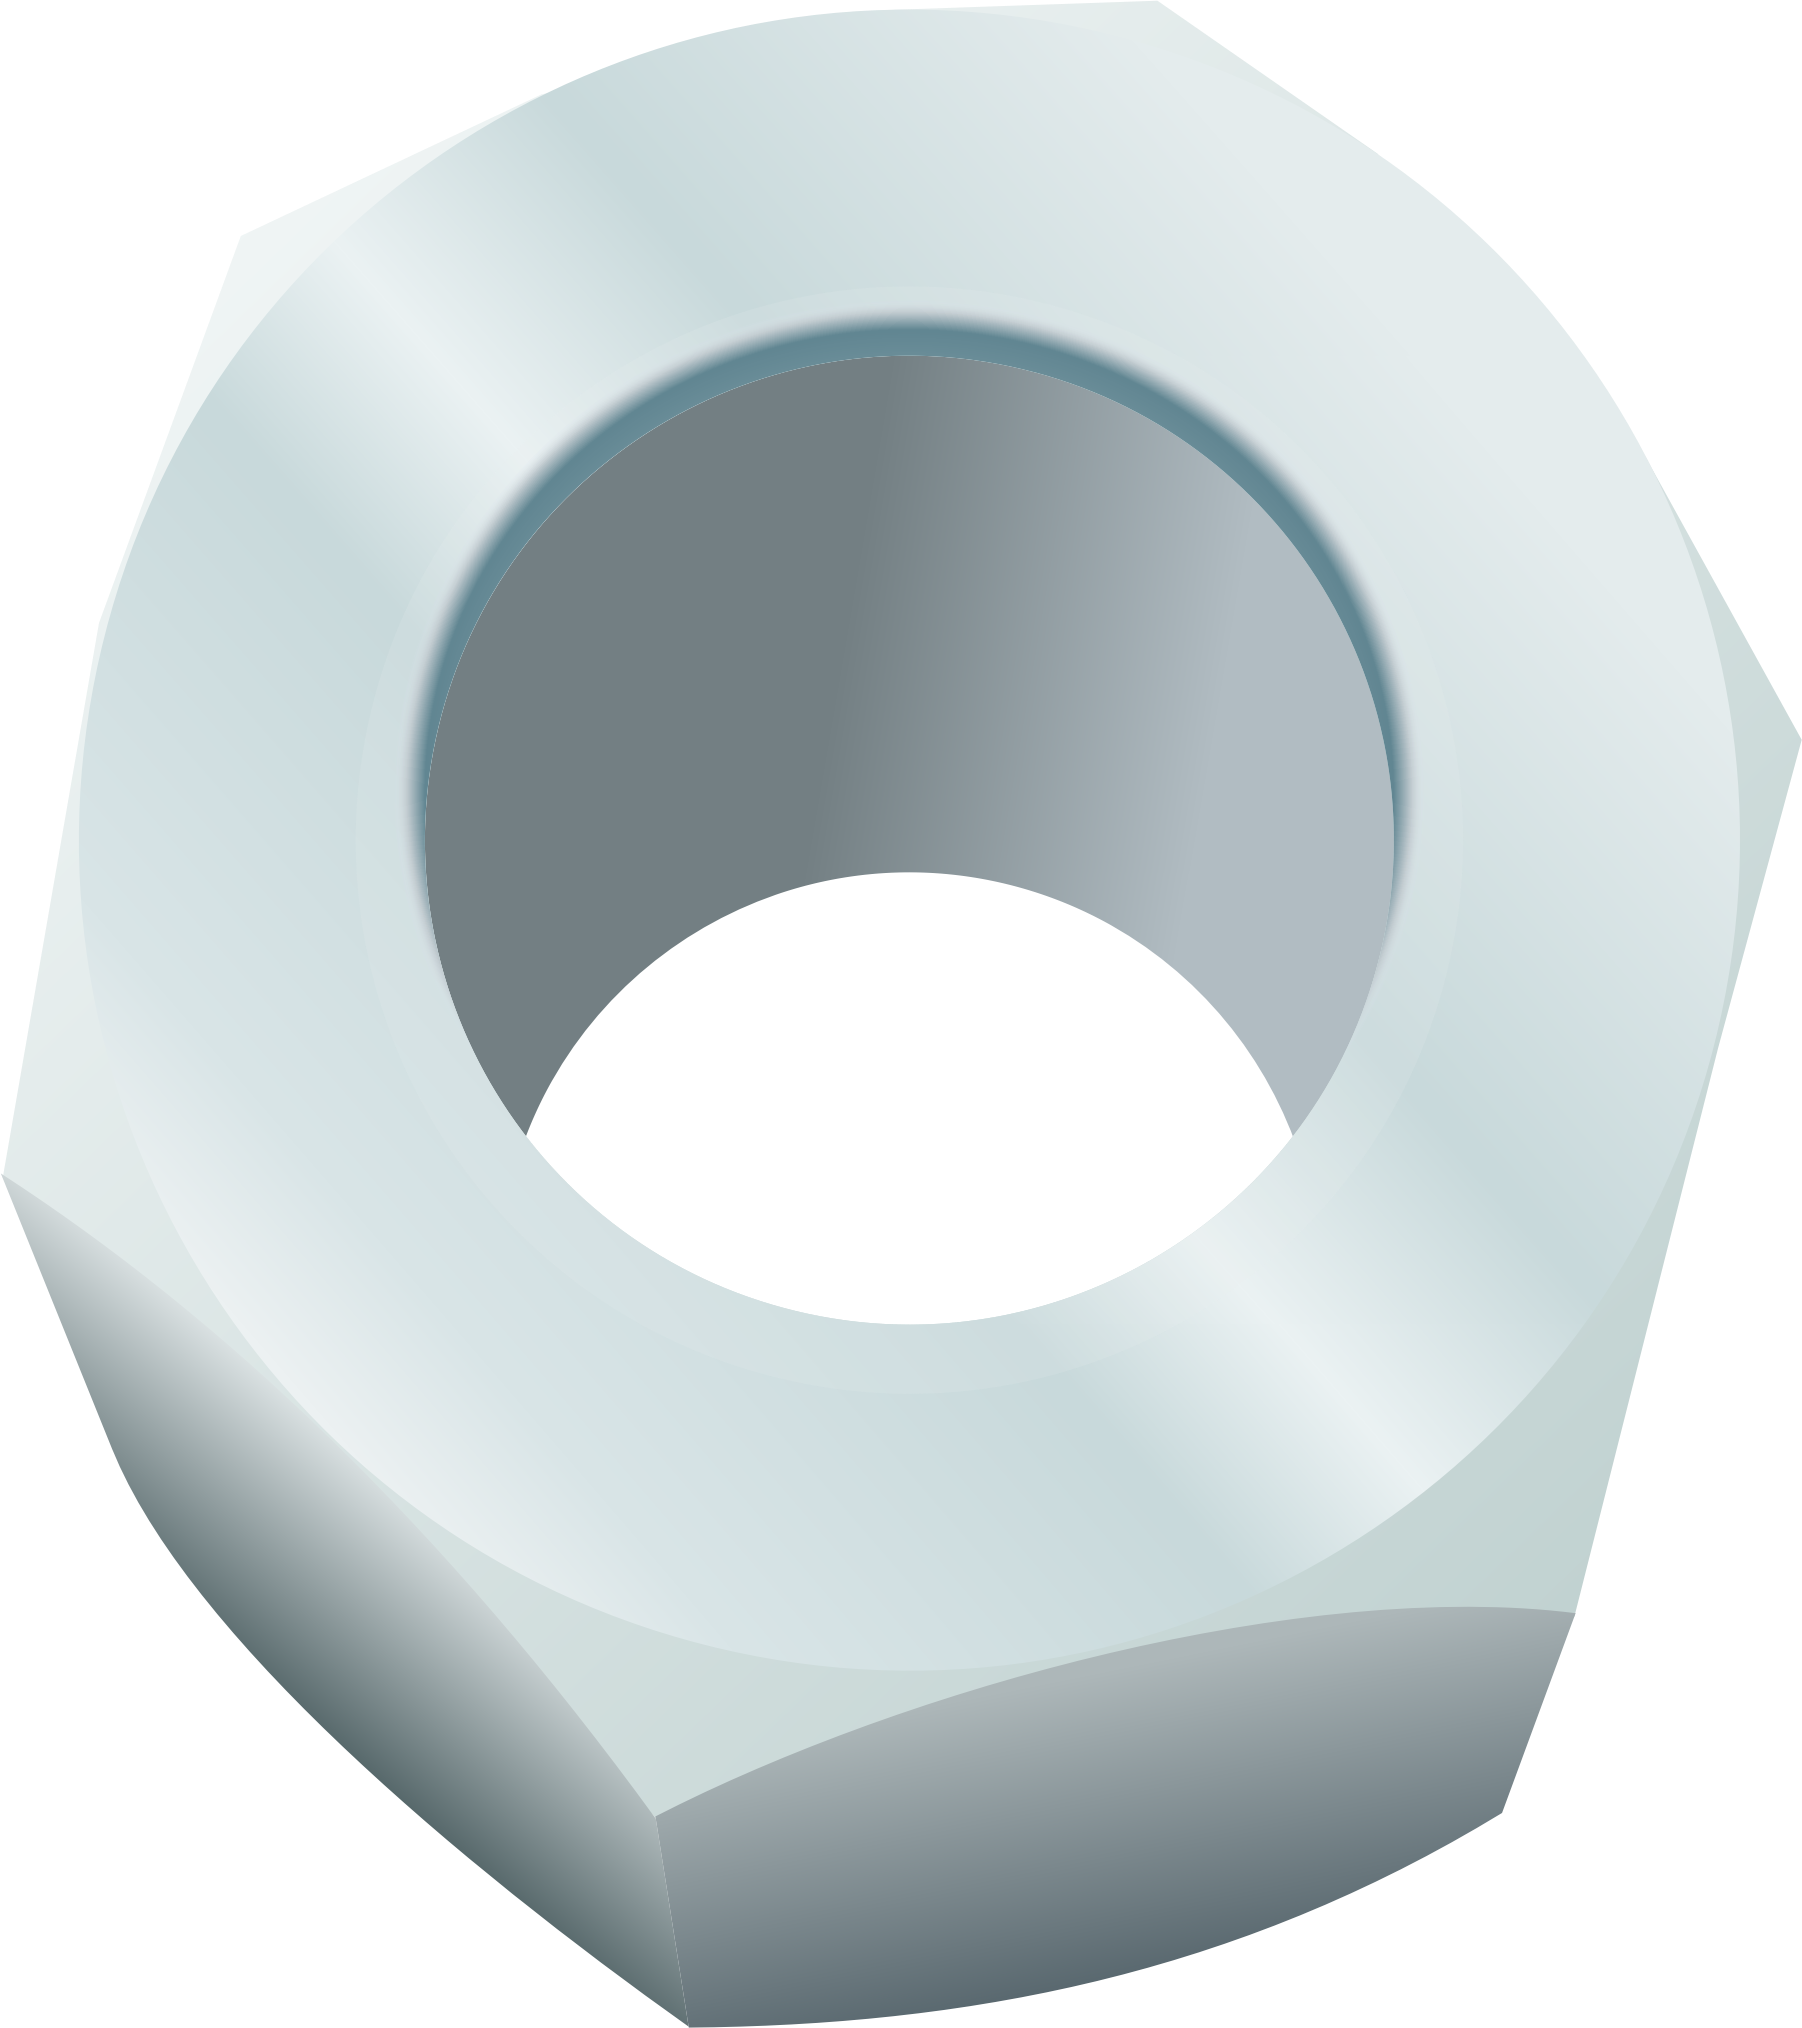 Nut big image png. Plumber clipart fitting